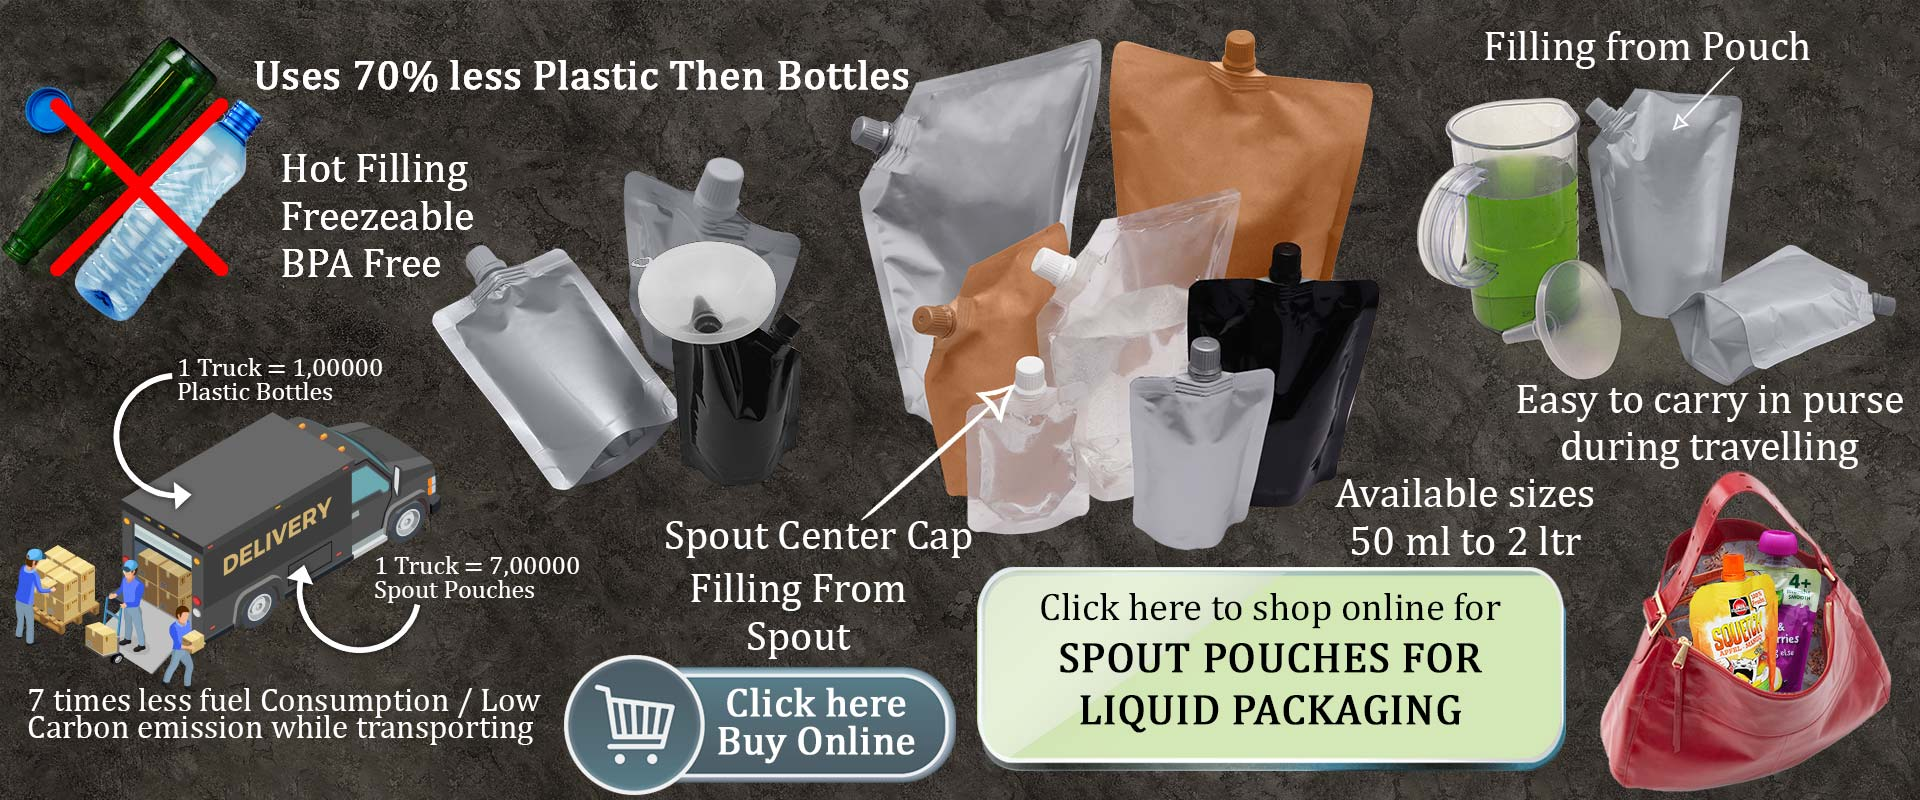 Spout Pouches PouchMakers